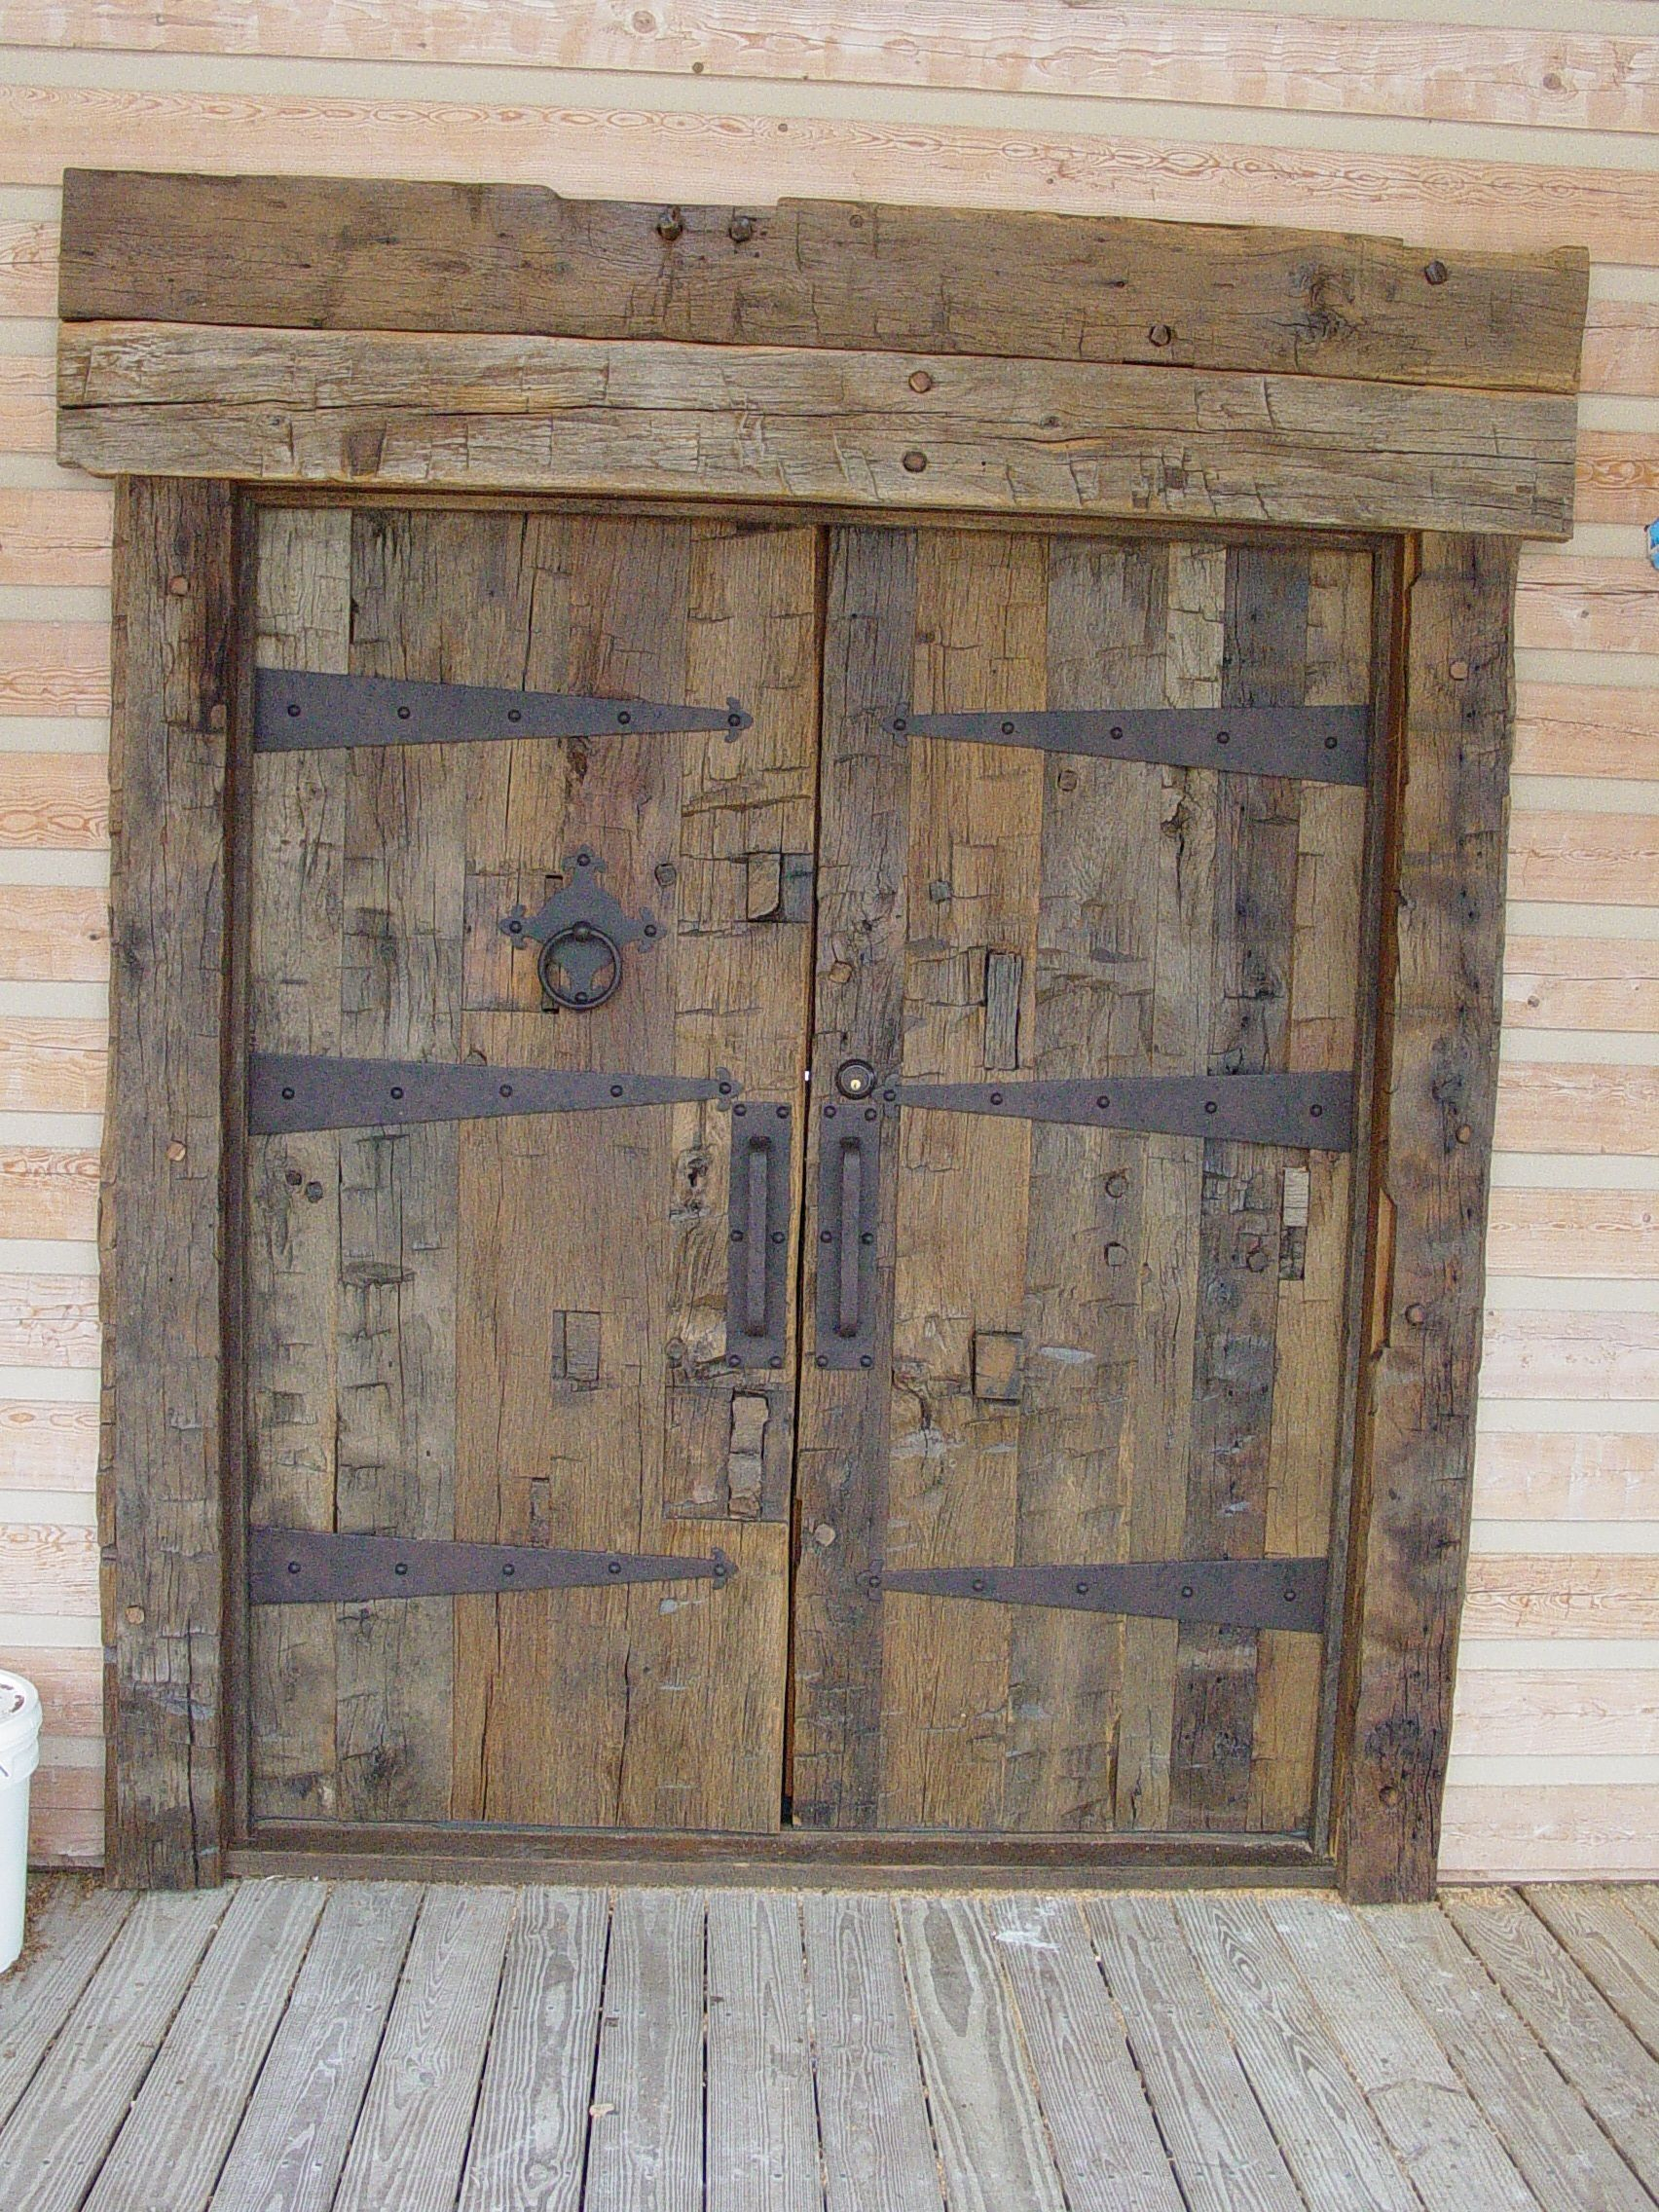 and for wood designs wooden classy ideas decorations well pictures reclaimed dark panels with rustic simple interior as prissy doors frames country inspiration inspiring design views exterior door front